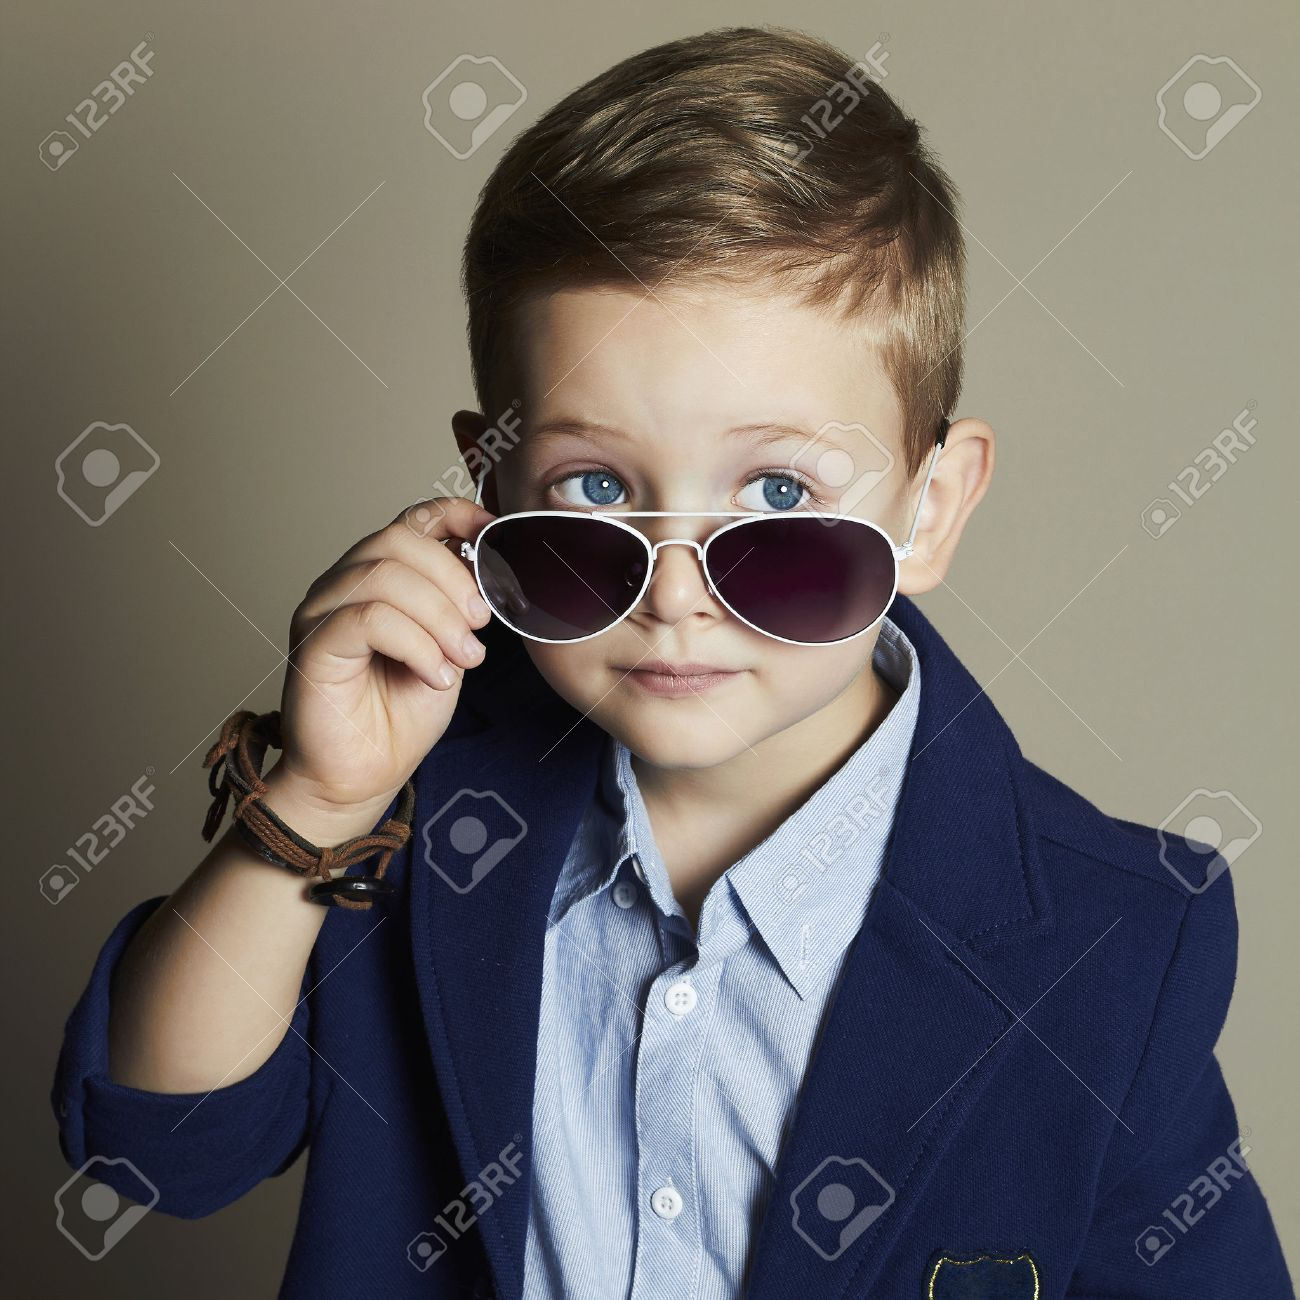 a9b67e551ec fashionable little boy in sunglasses.stylish kid in suit. fashion children.business  boy